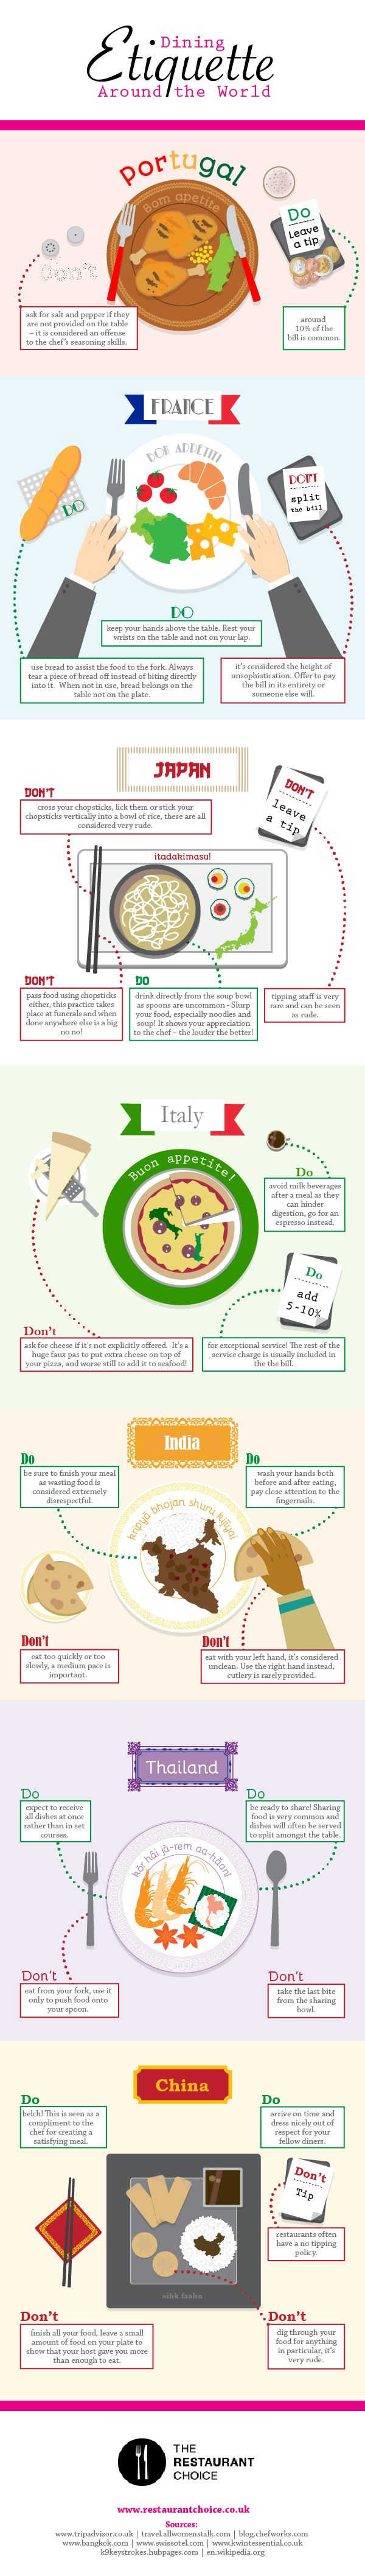 Whether you're abroad, or going out to a foreign restaurant locally, you need to be sensitive to the dining etiquette of the culture. This chart gives you a broad overview of table manners around the world. @LifeHacker